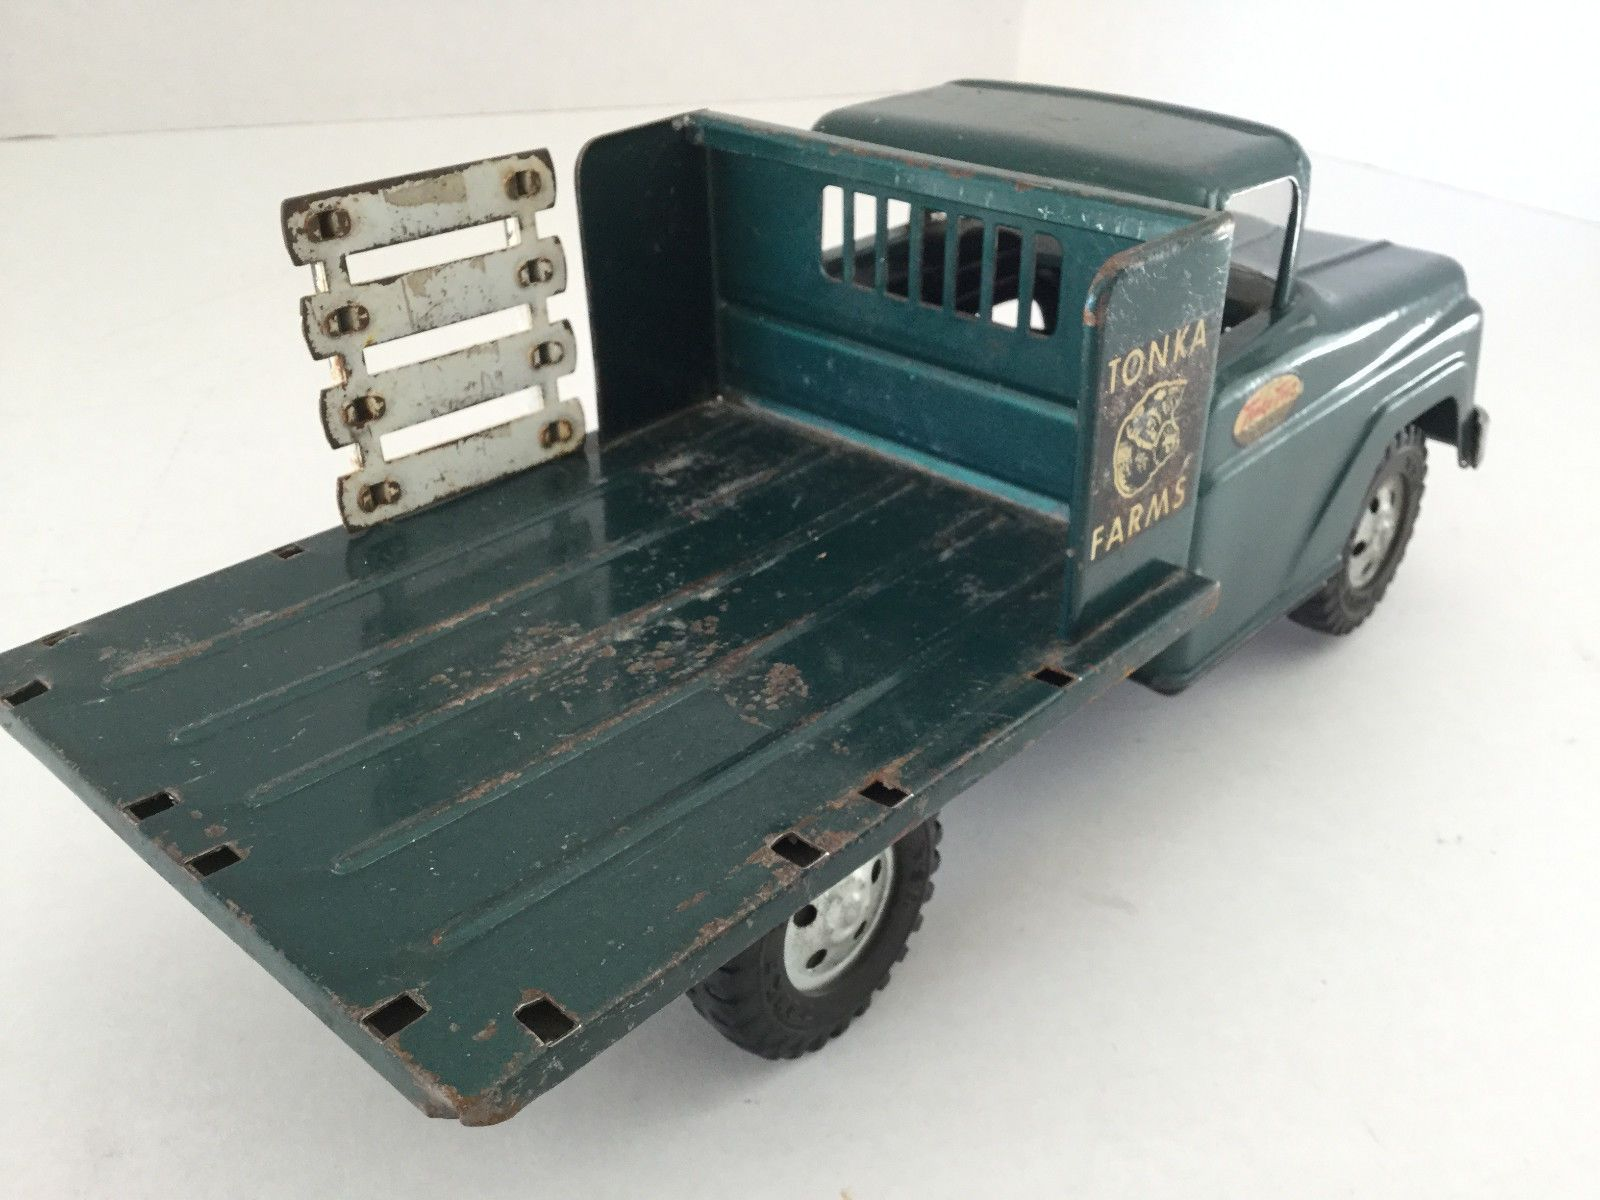 Vintage 1958 Tonka Farms Stake Truck - Dark Green - All Original in Toys, Hobbies, Diecast Vehicles, Cars, Trucks & Vans, Vintage Manufacture | eBay